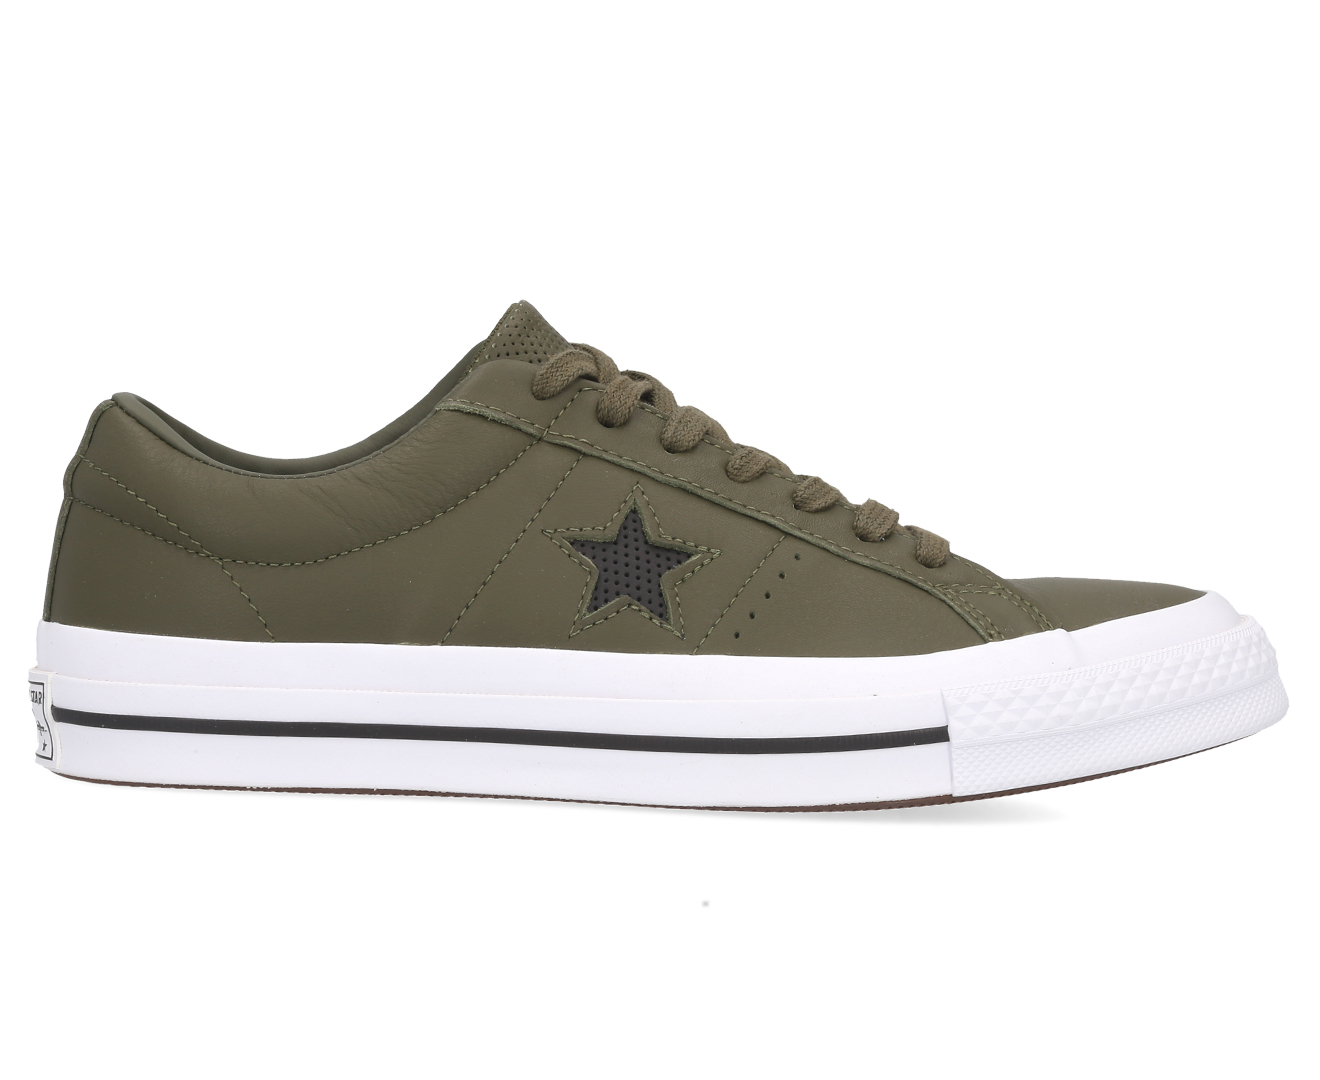 Details about Converse Men's One Star Ox Sneakers HerbalBlackWhite